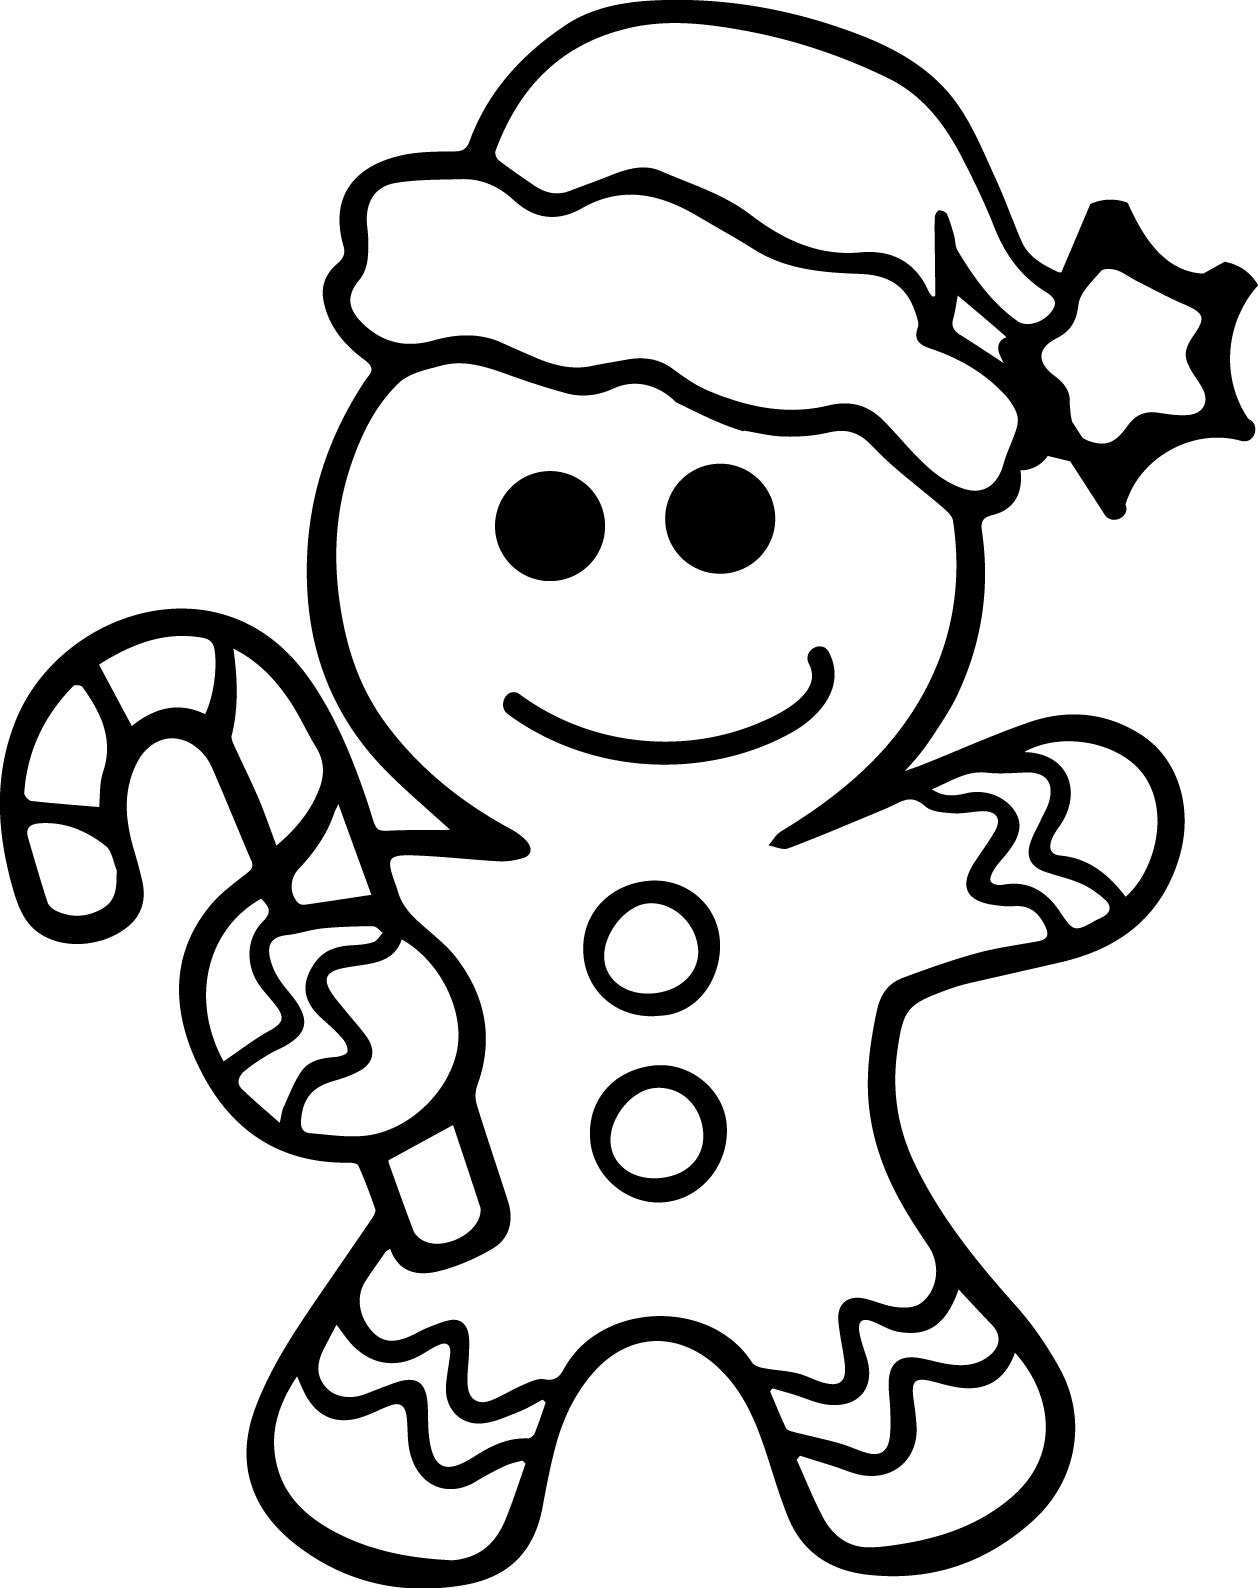 Gingerbread Man Outline | Free download on ClipArtMag